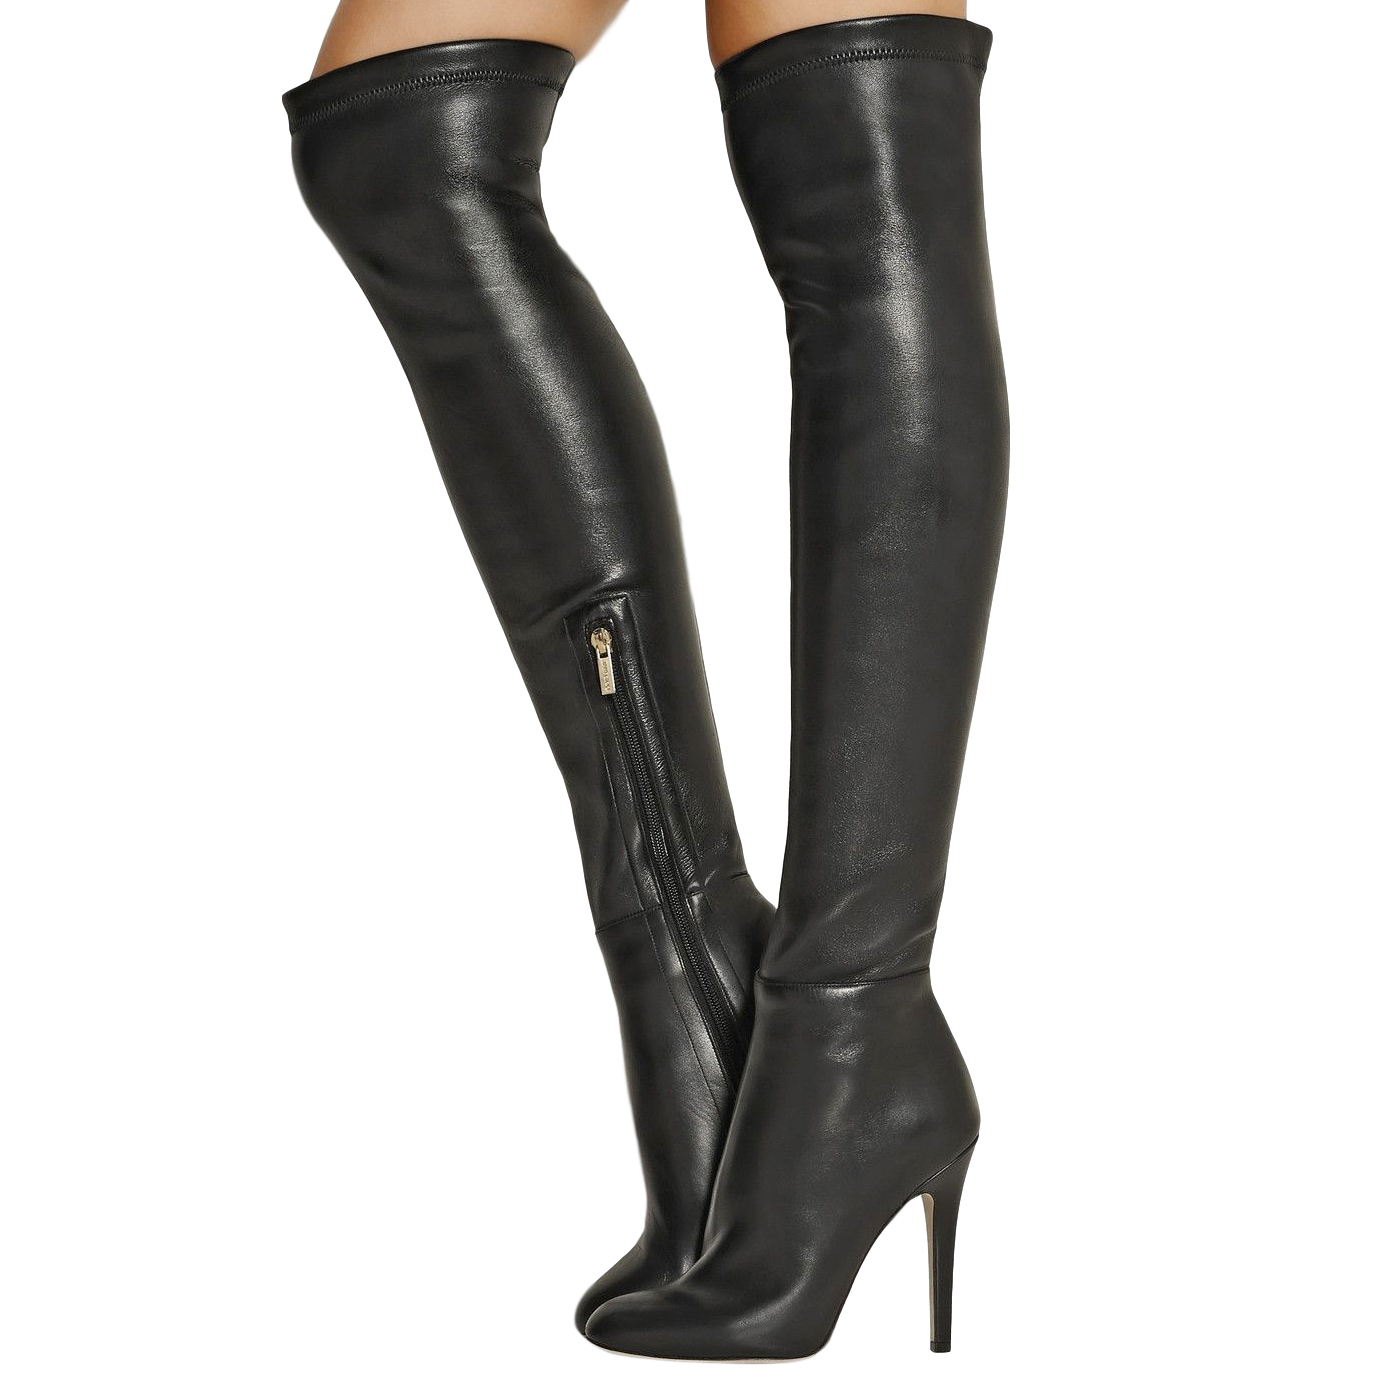 de52c34addb Jimmy Choo Turner Stretch Leather Over The Knee Boots